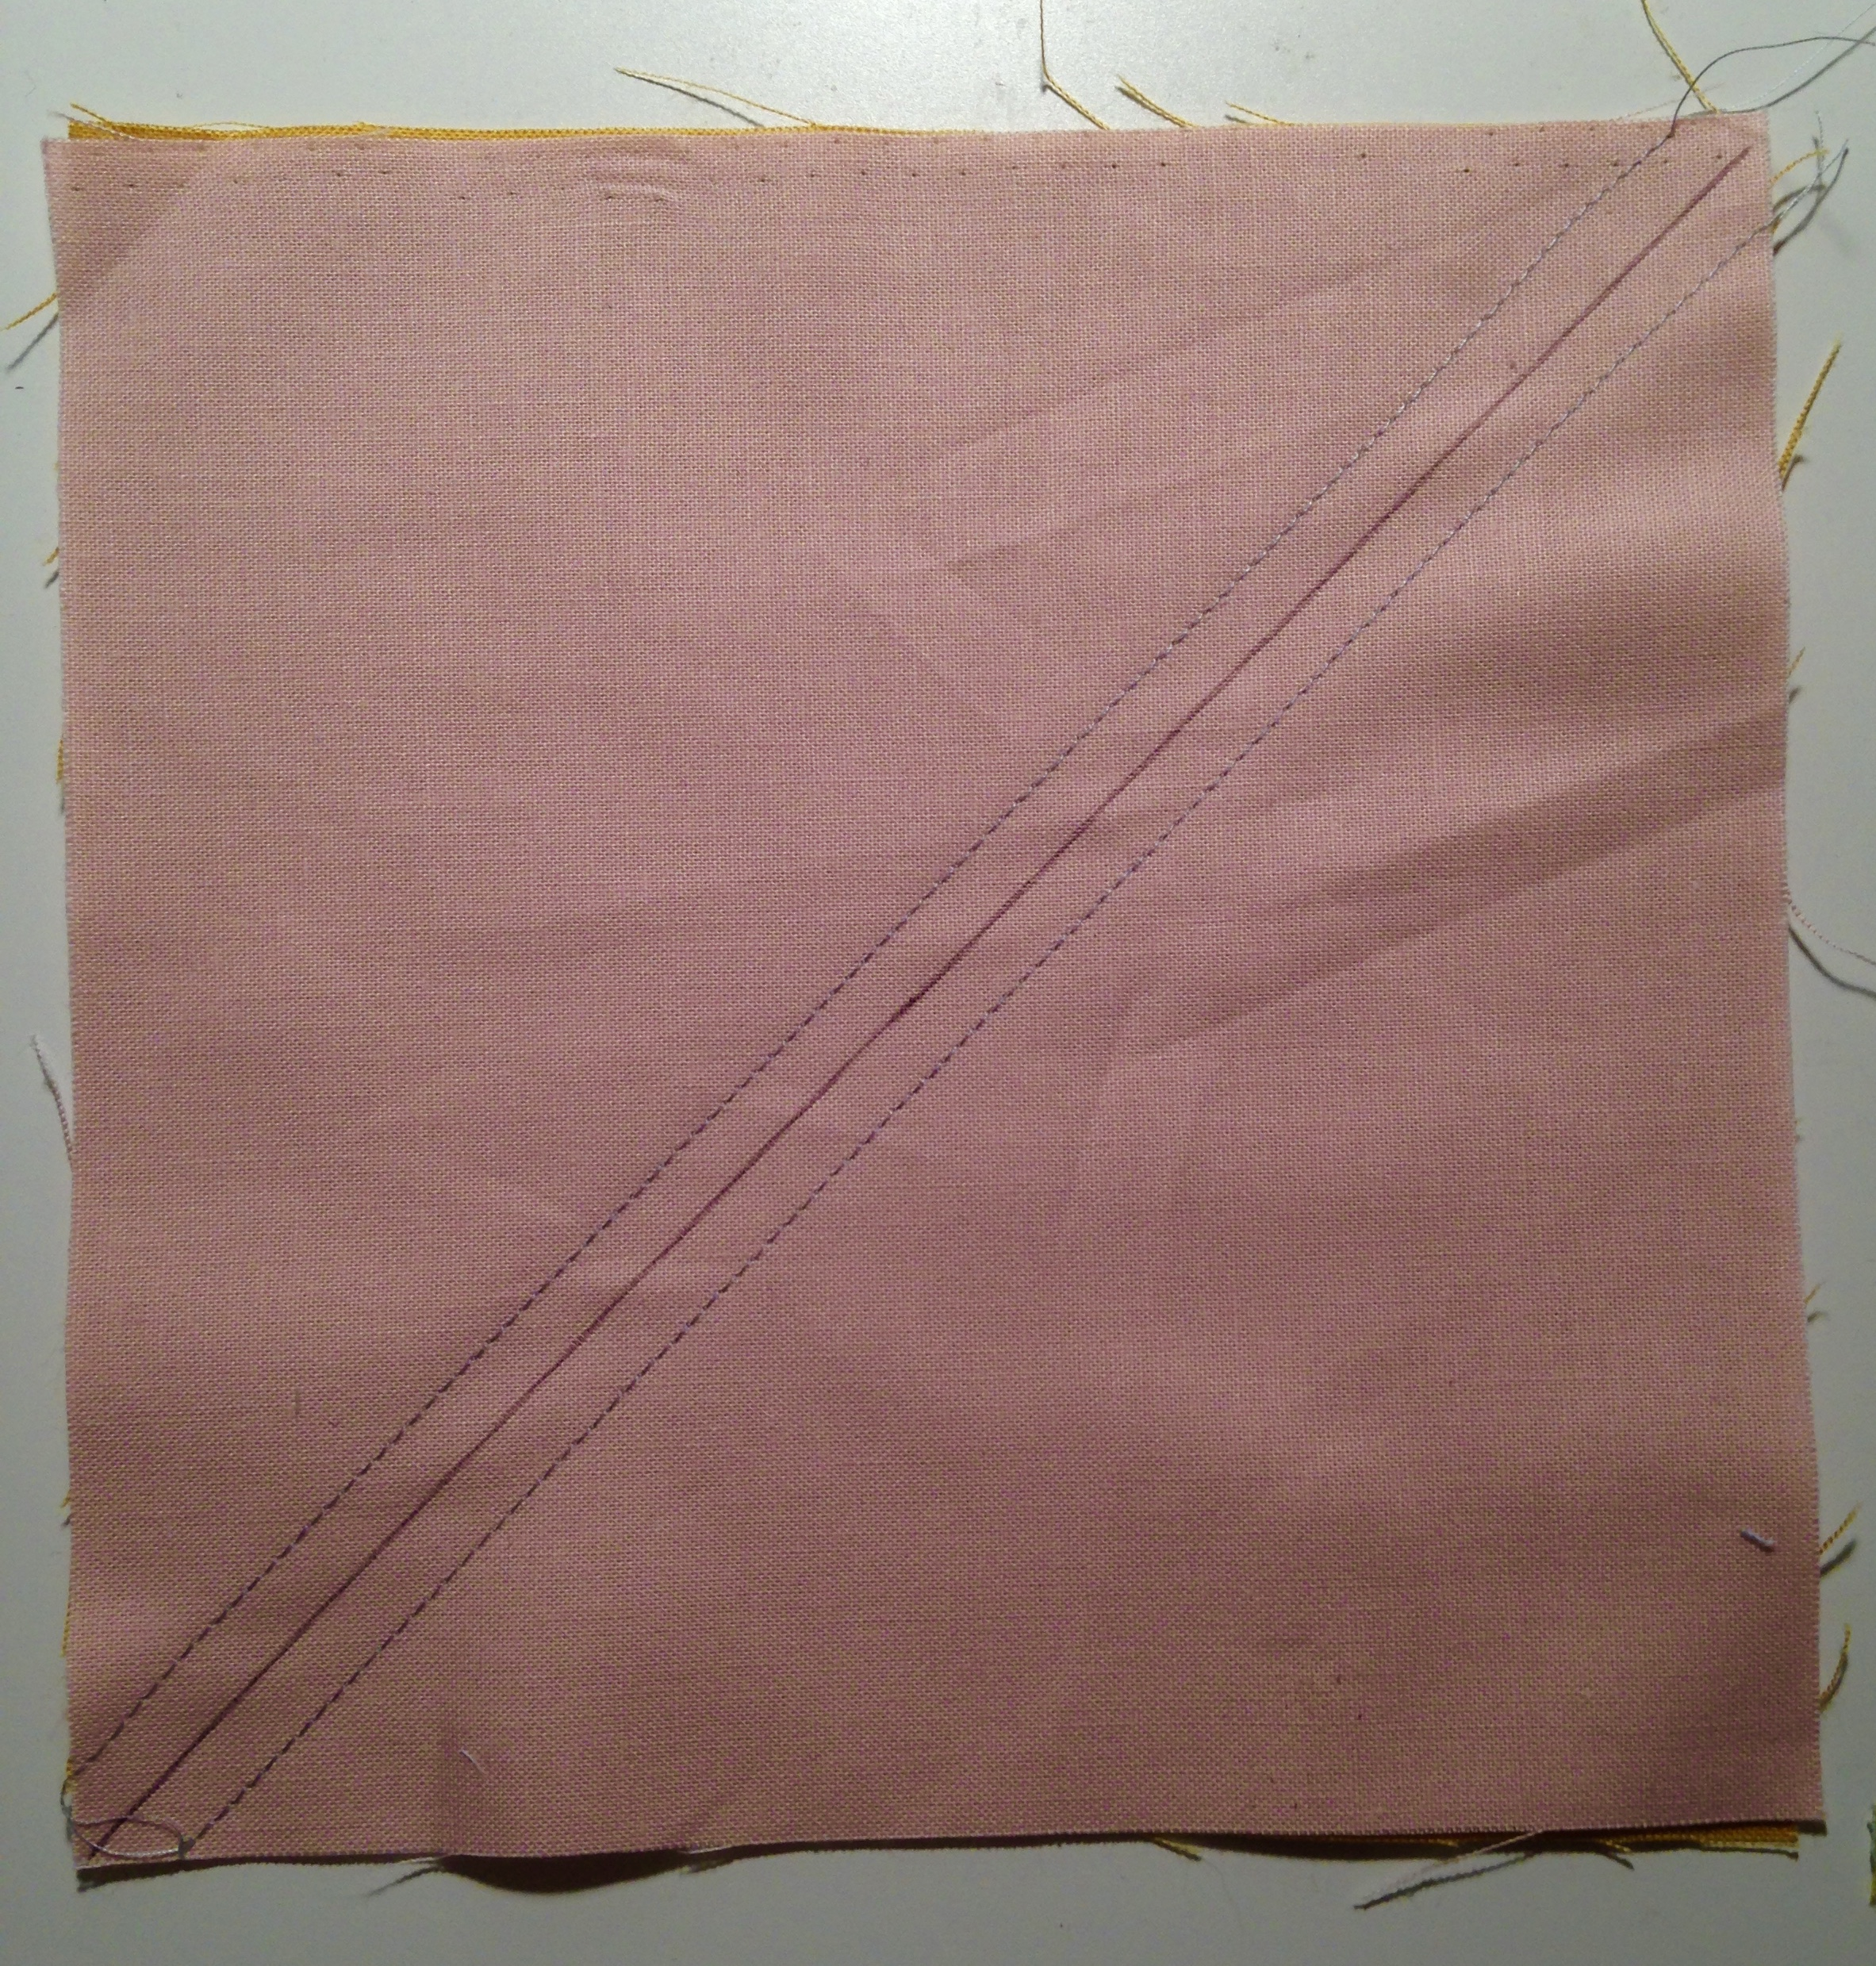 "2. Sew 1/4"" away from the drawn line on each side."